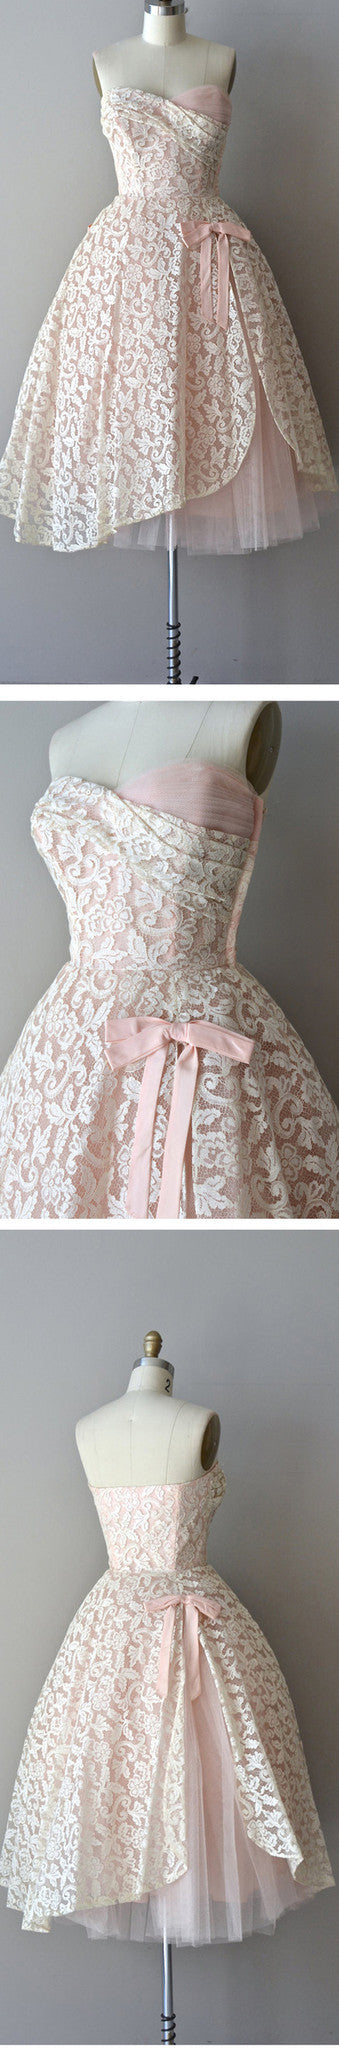 Junior Lovely Strapless Pink Lace Vintage Sweetheart Bow Knot Tea-length Homecoming Prom Dress,BD0075